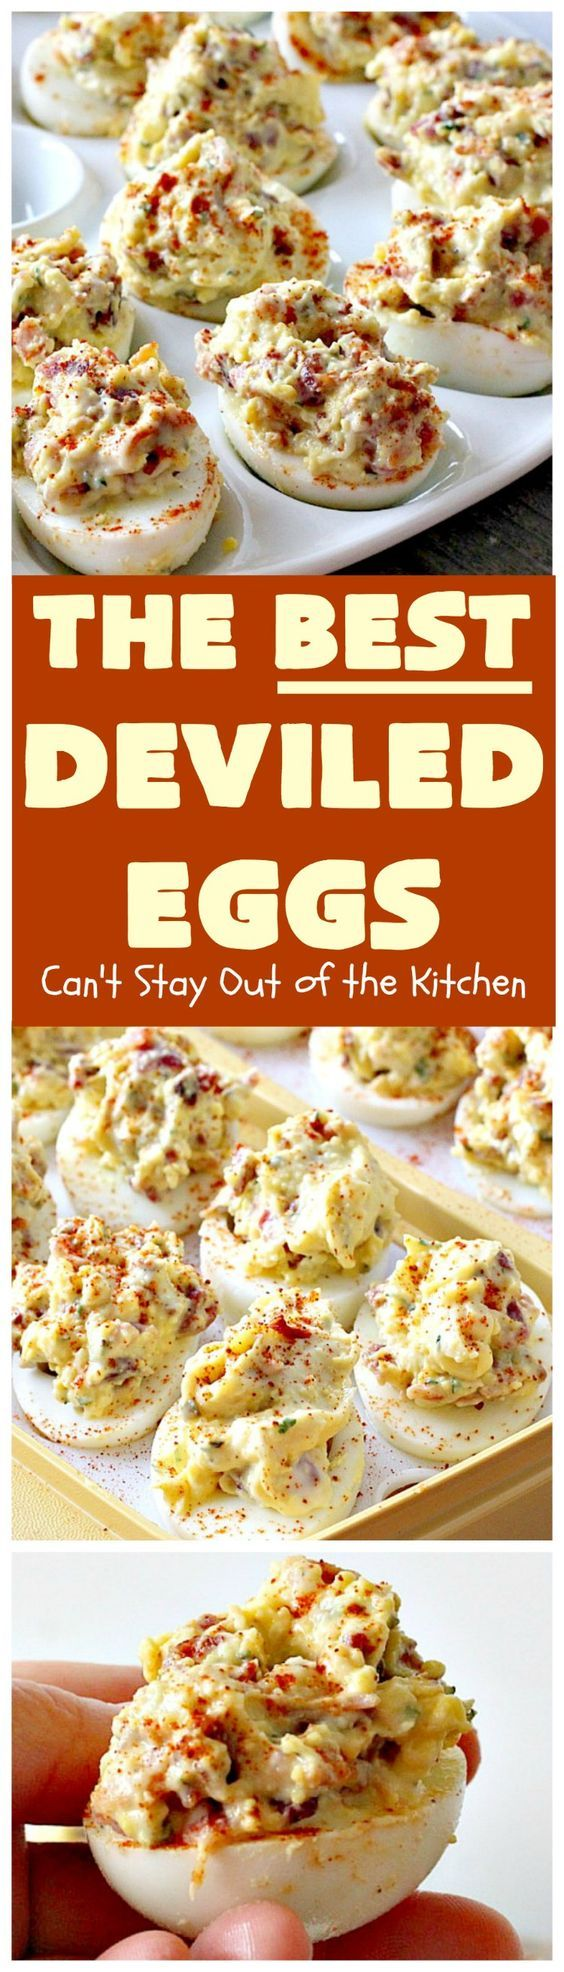 ► Best Deviled Eggs Recipe: eggs, bacon, prepared mustard, flat leaf parsley, sugar, pepper, Miracle Whip, fresh chives and paprika.